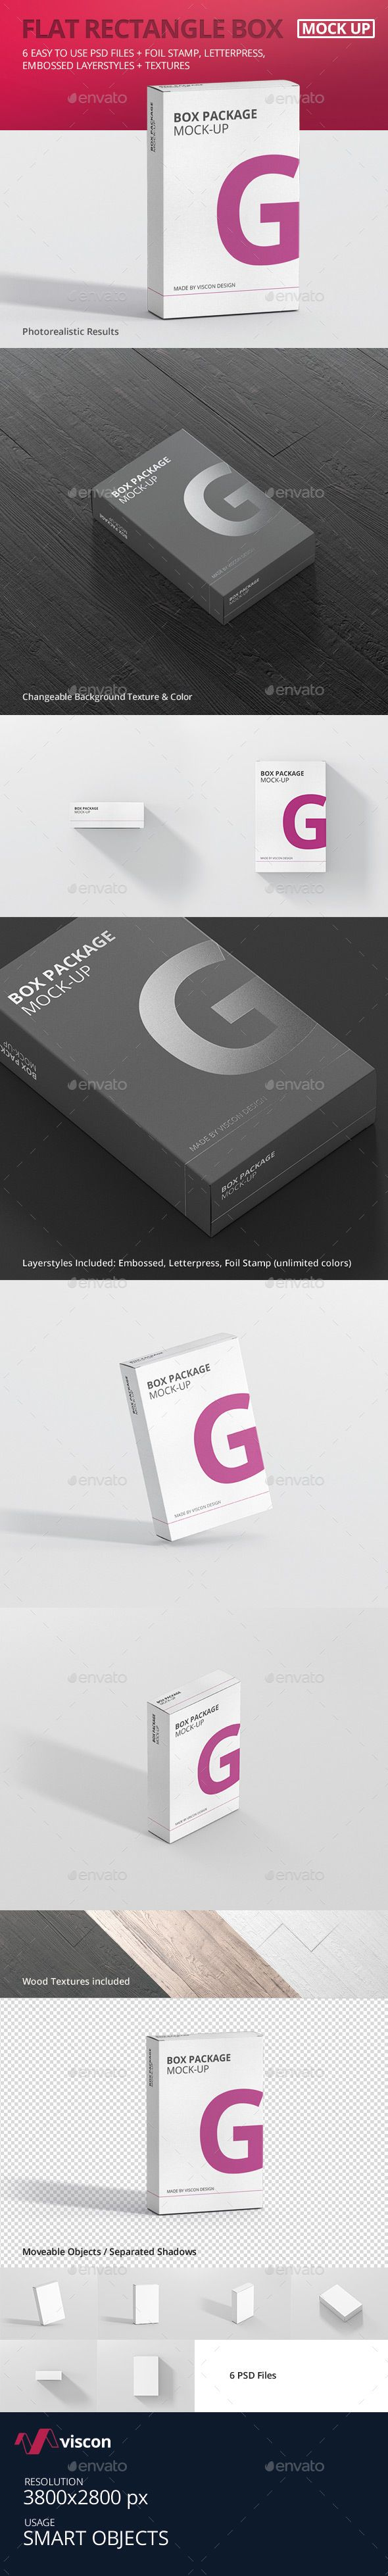 35 best the best product package mockups images on pinterest